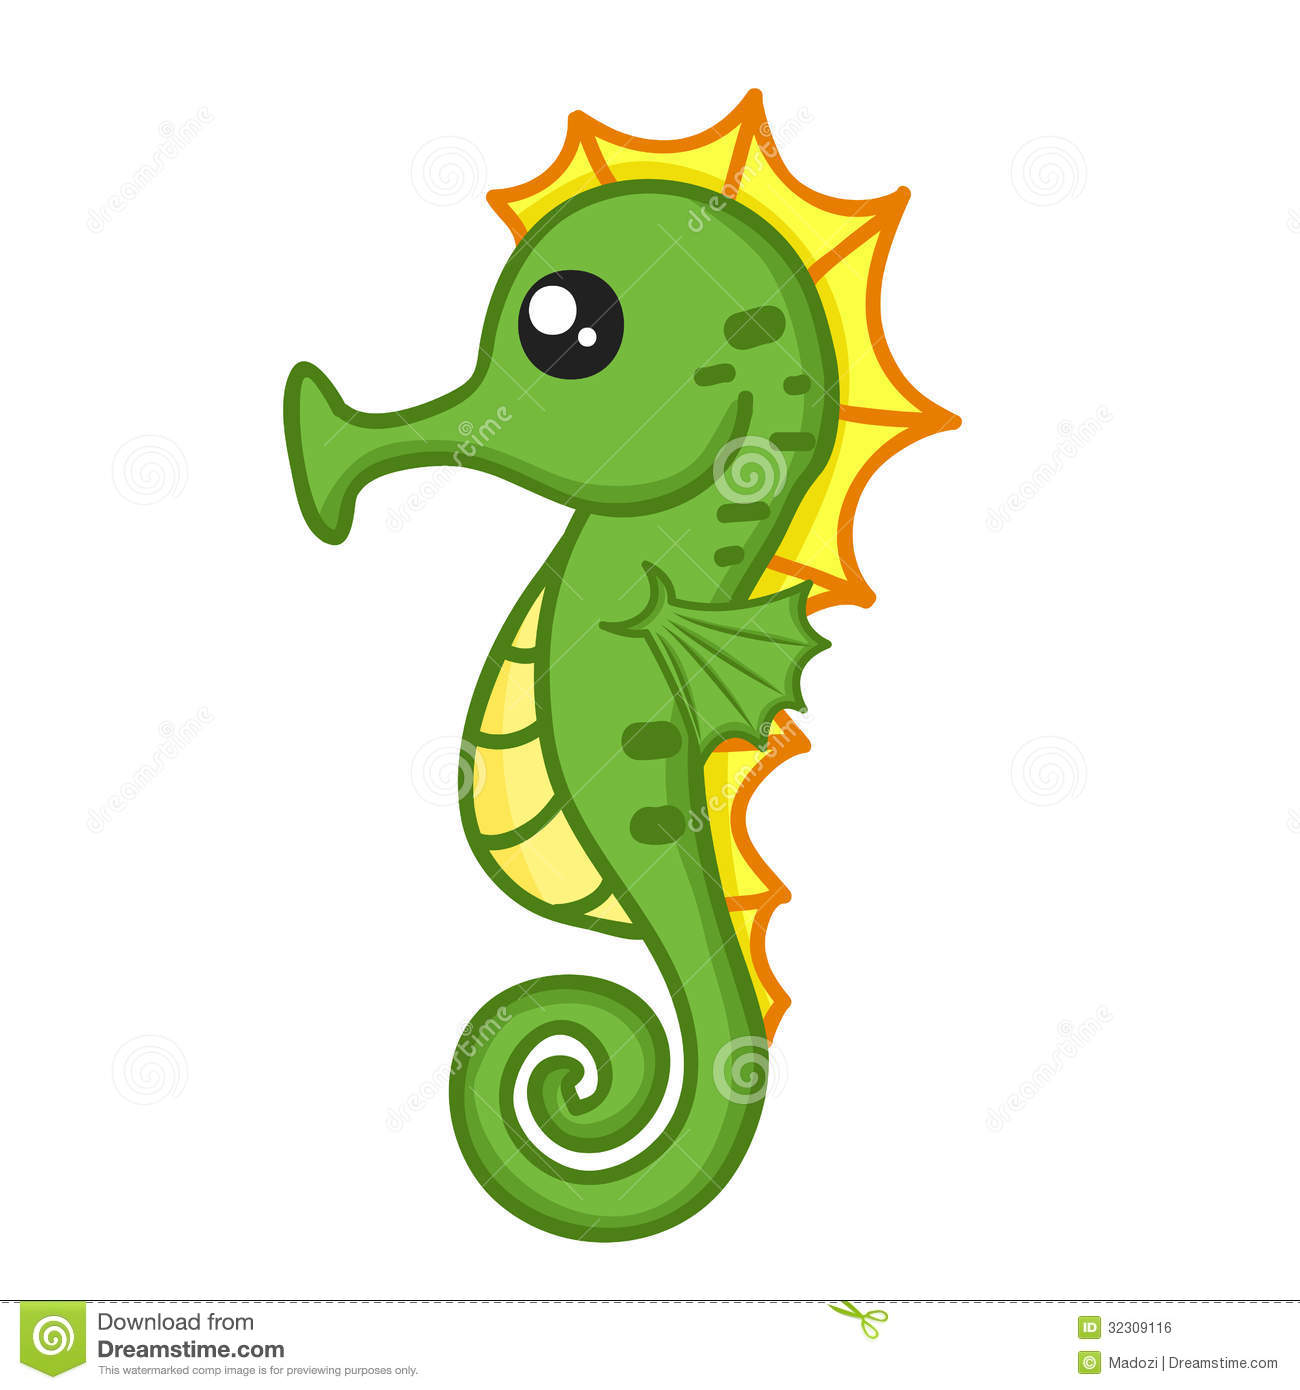 Cute Seahorse Royalty Free Stock Image I-Cute Seahorse Royalty Free Stock Image Image 32309116-2